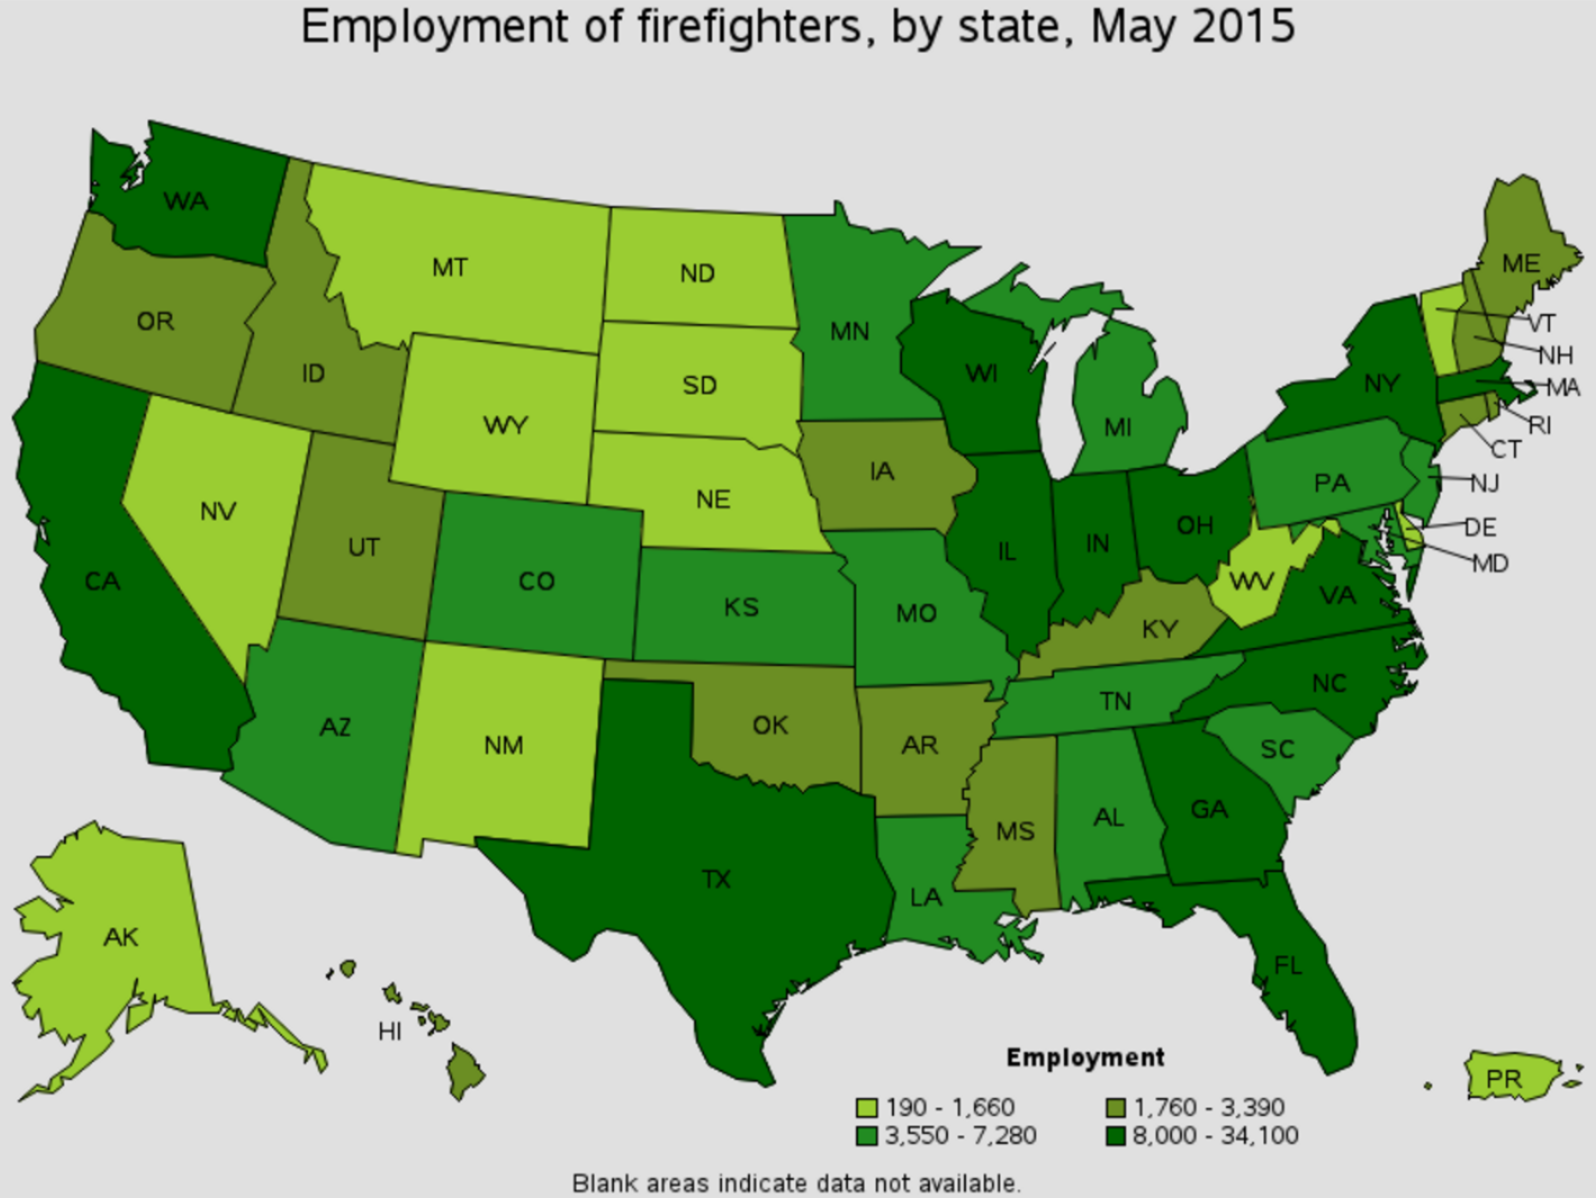 firefighter job outlook by state Walterboro South Carolina